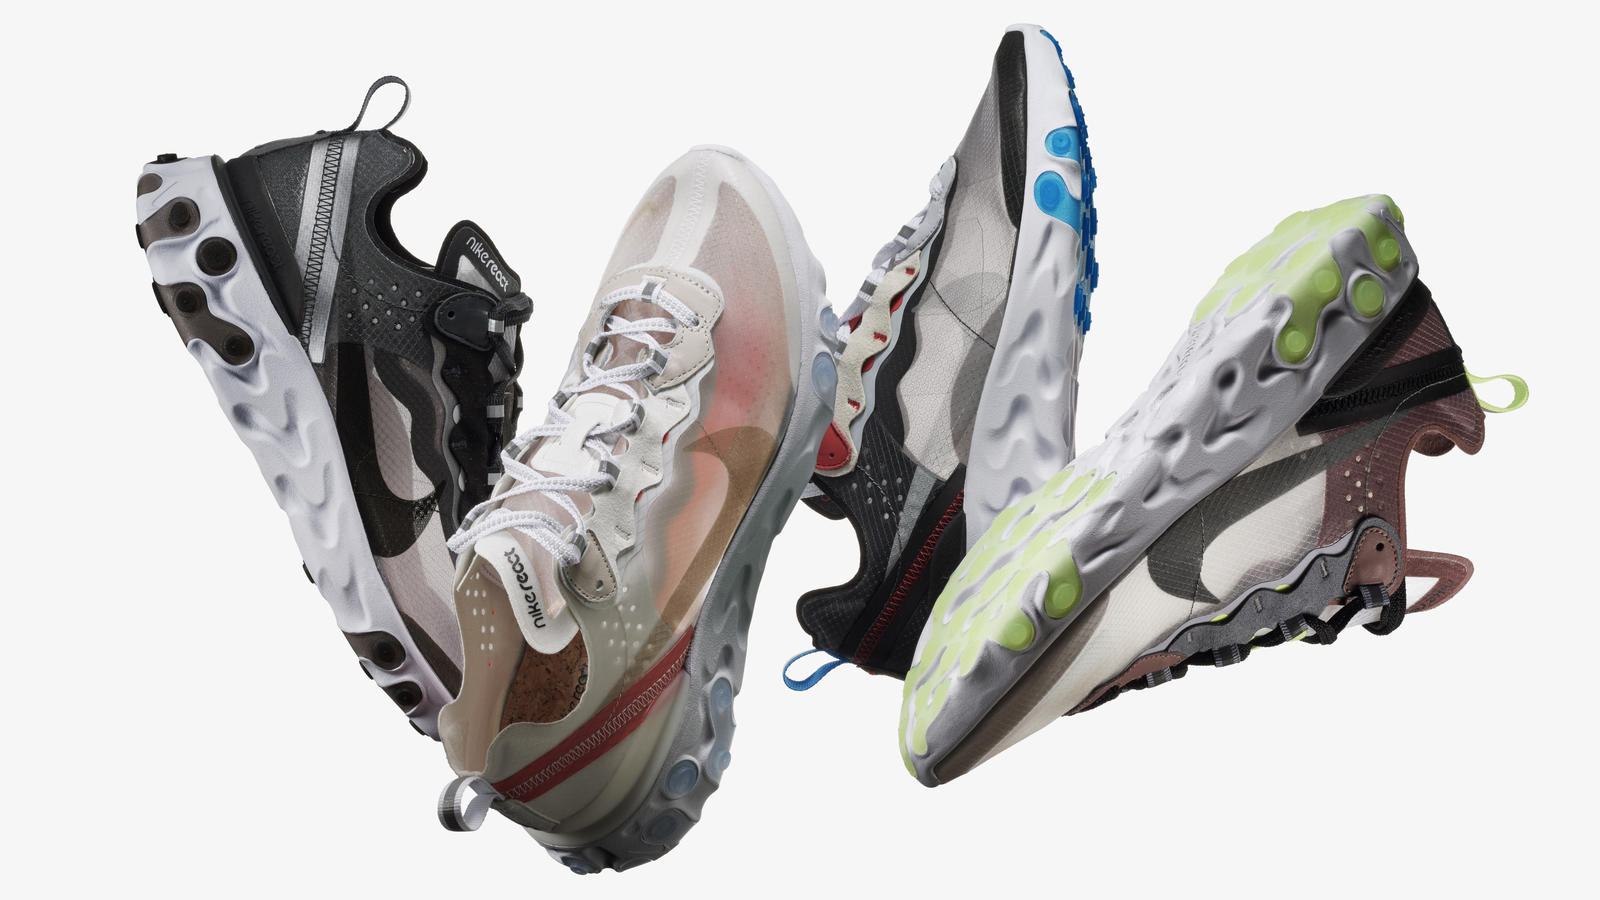 Rudimentary Process, Sophisticated Result: The Nike React